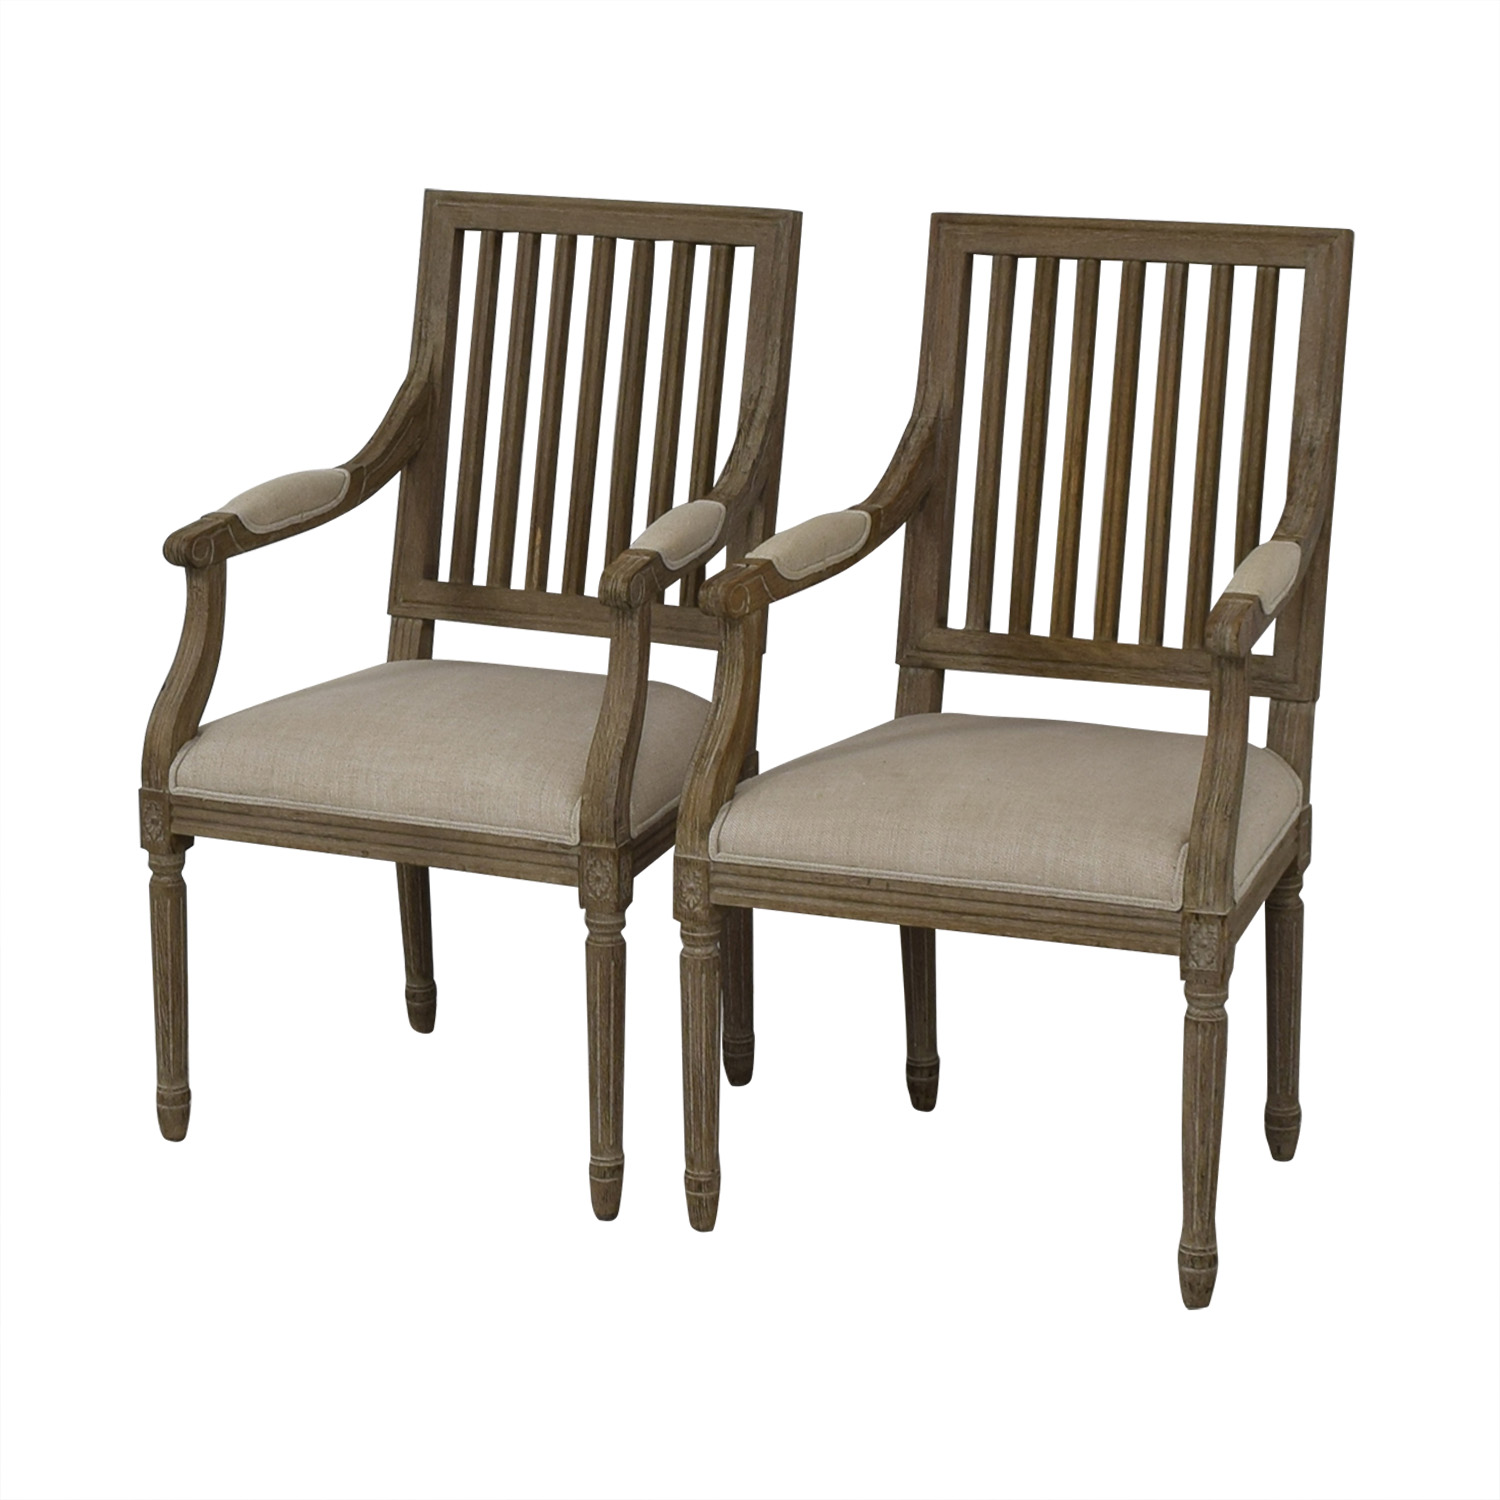 Restoration Hardware Restoration Hardware Spindle Back Dining Chairs price